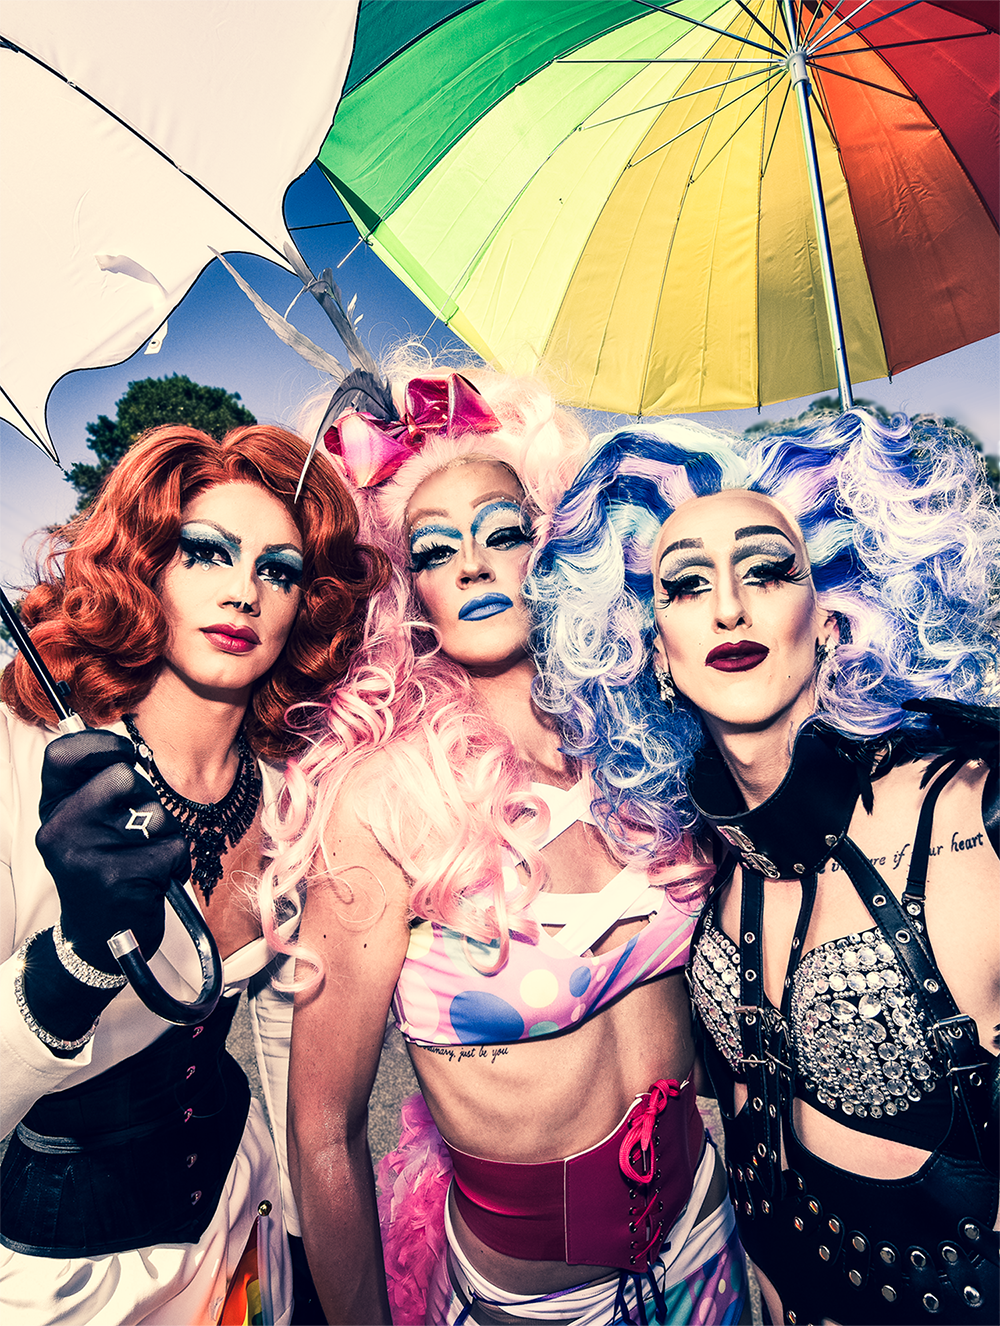 ChillOut Festival is held every year in Daylesford in March. Australia's longest and largest regional queer festival. Image by Jeremy Bannister ChillOut 2018